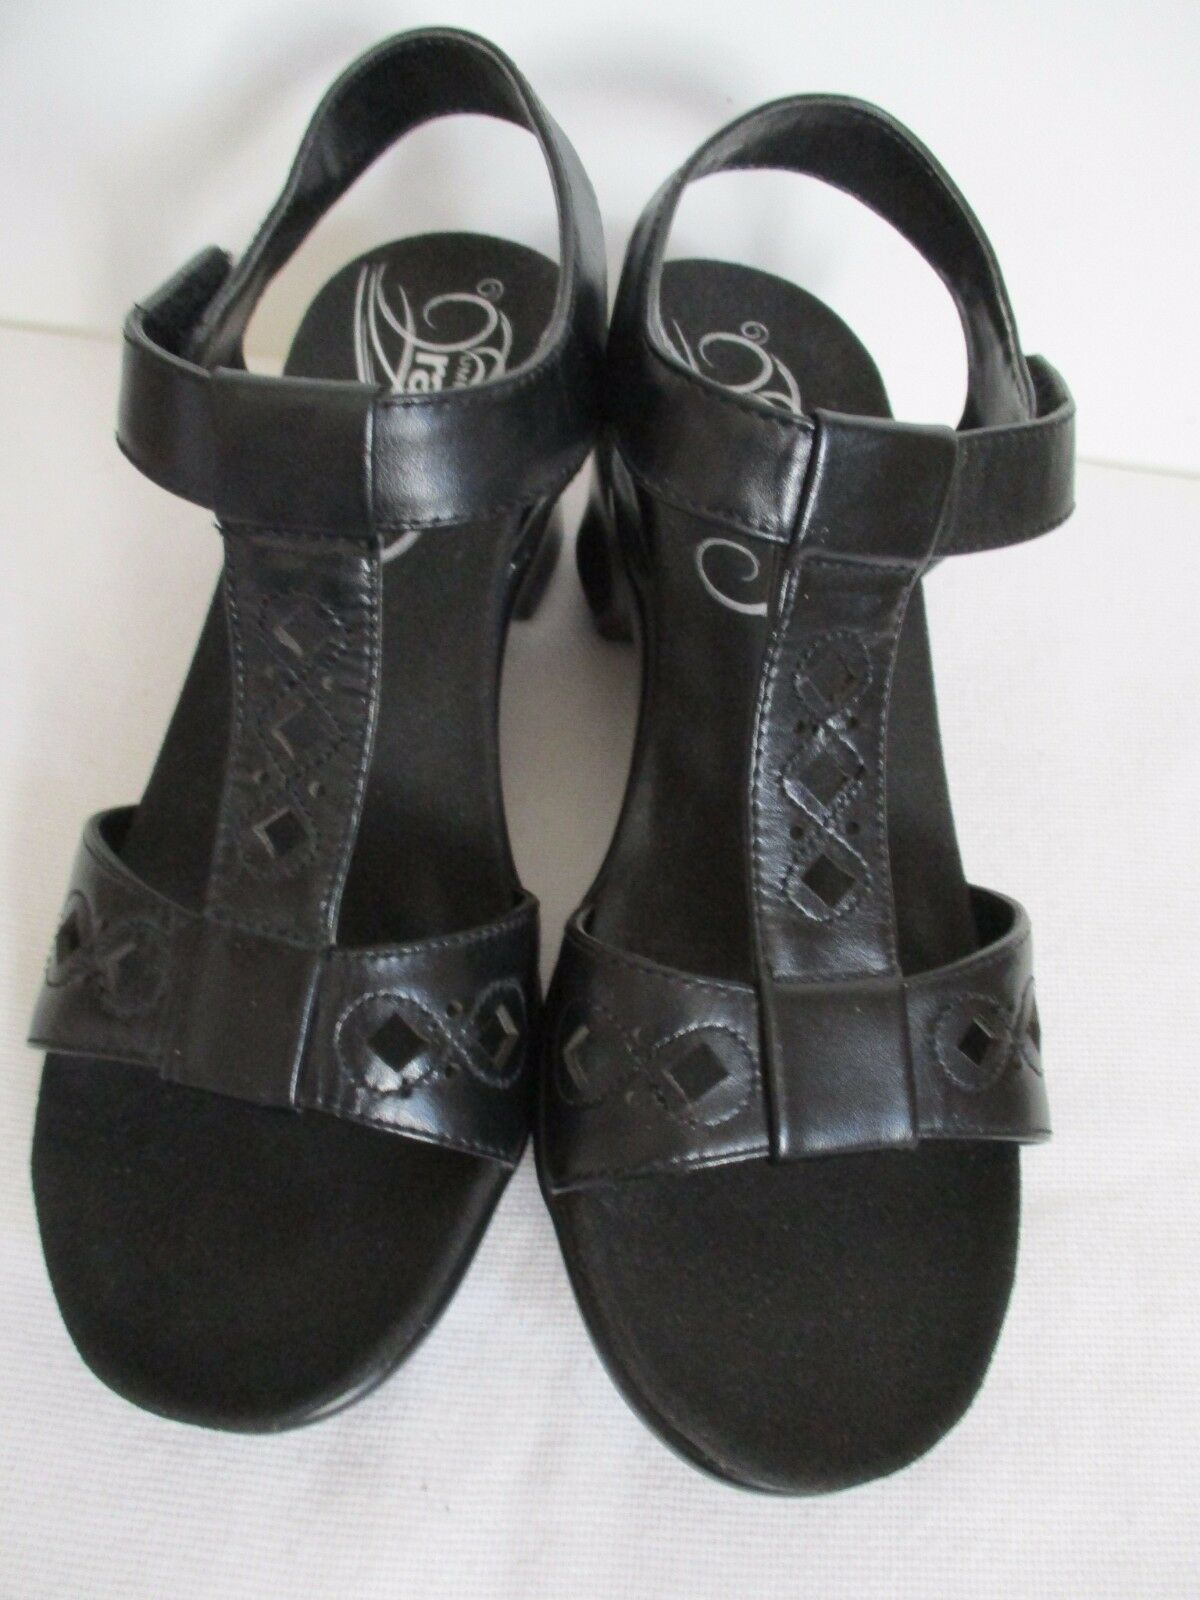 Umberto Rafini Sandals Heeled Black Leather US Cut Out Size 37 US Leather 382f14